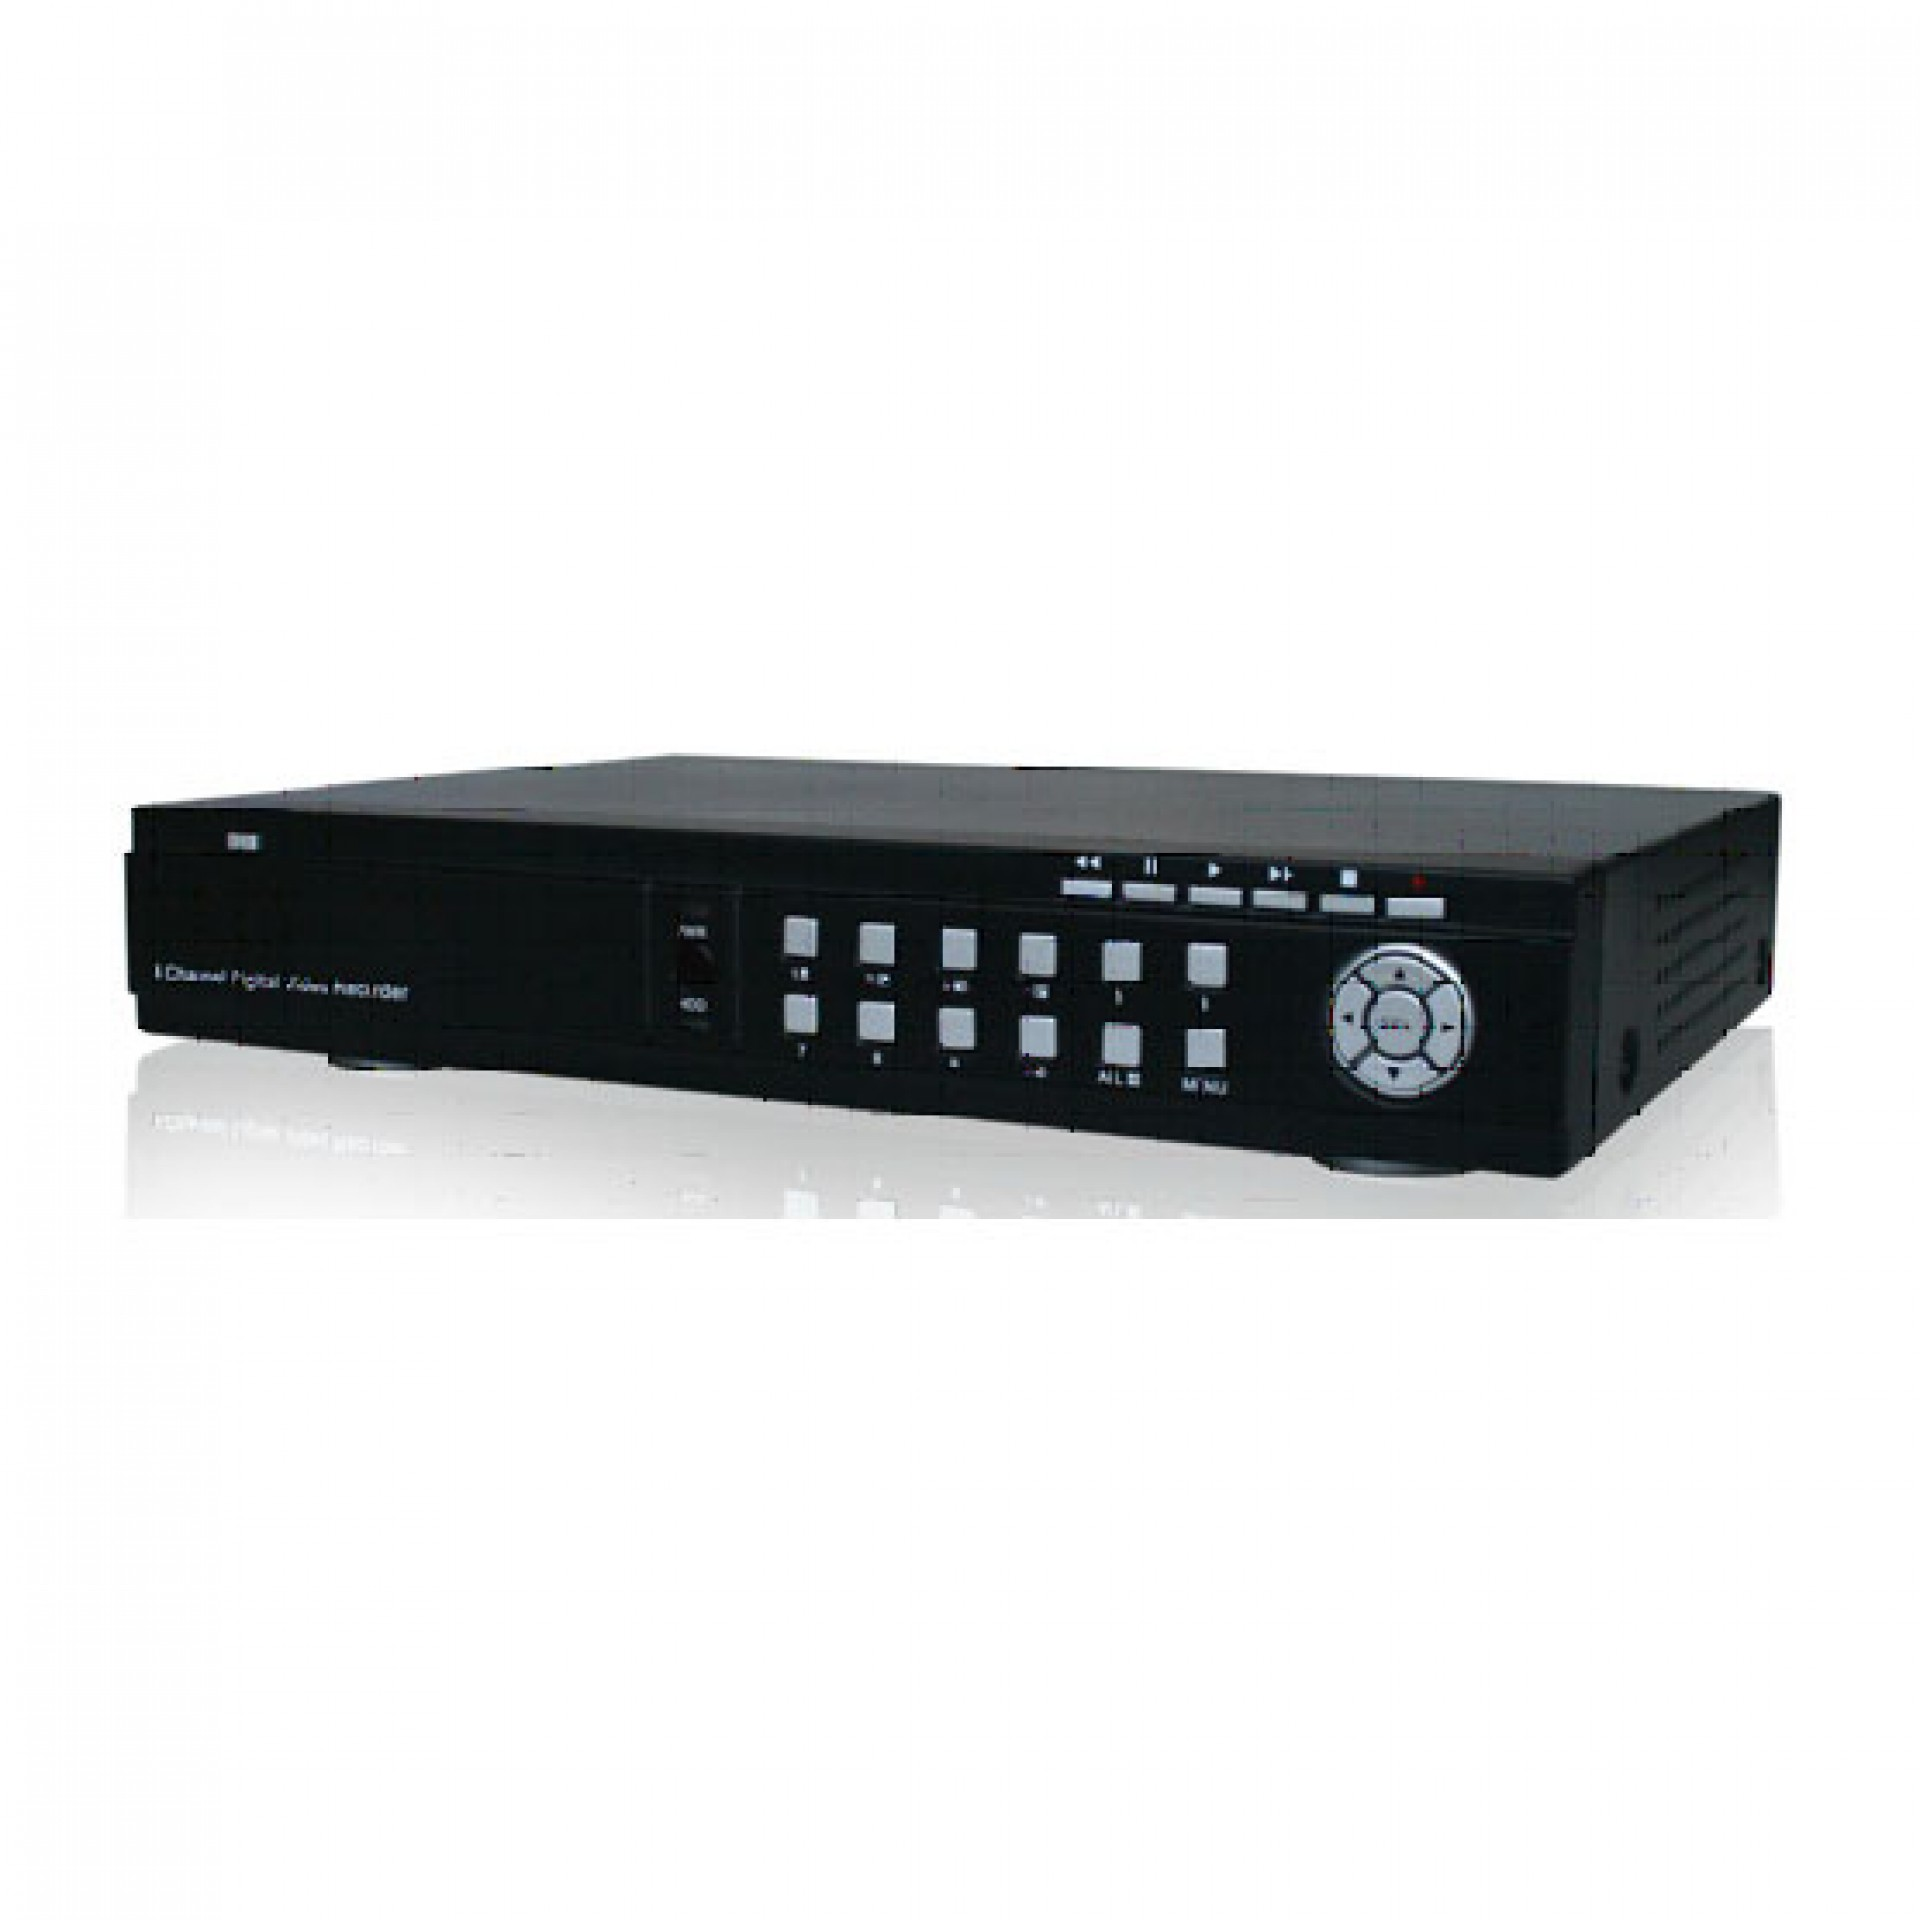 JB SECURITY DVR 9MP4